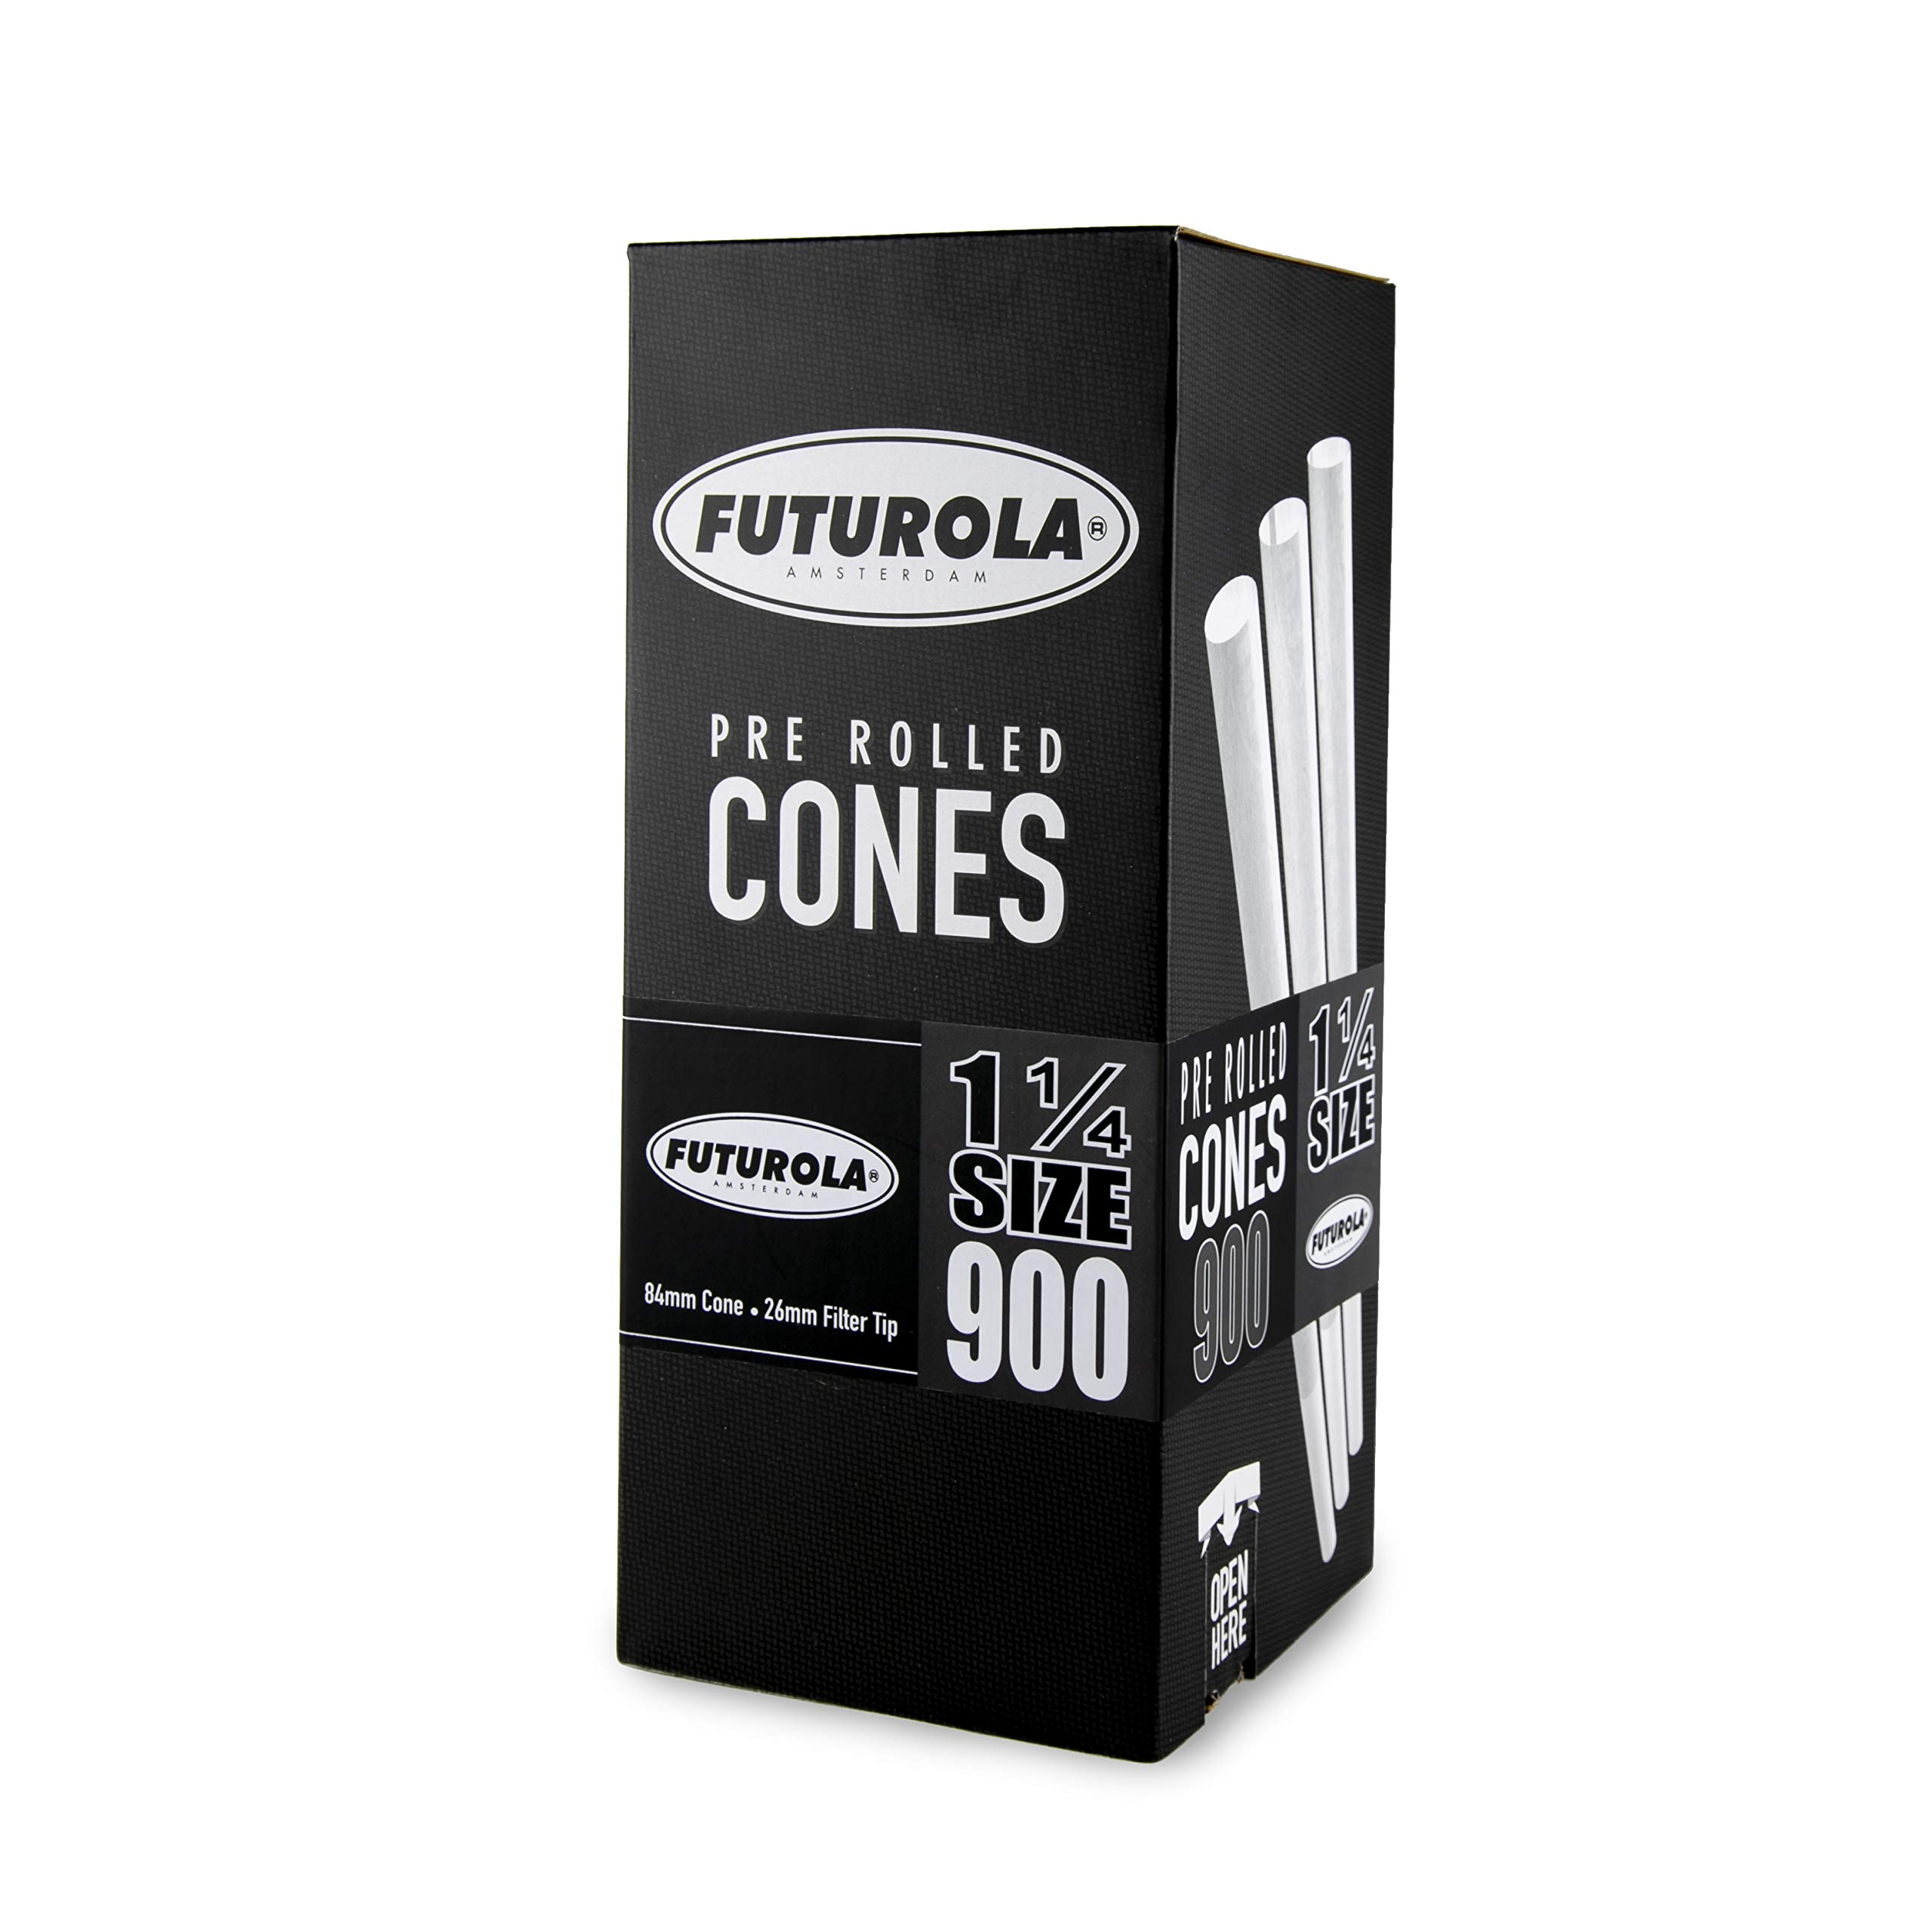 Futurola - Unrefined Super Thin Pre Rolled Cones - (900, 1 1/4 - White)